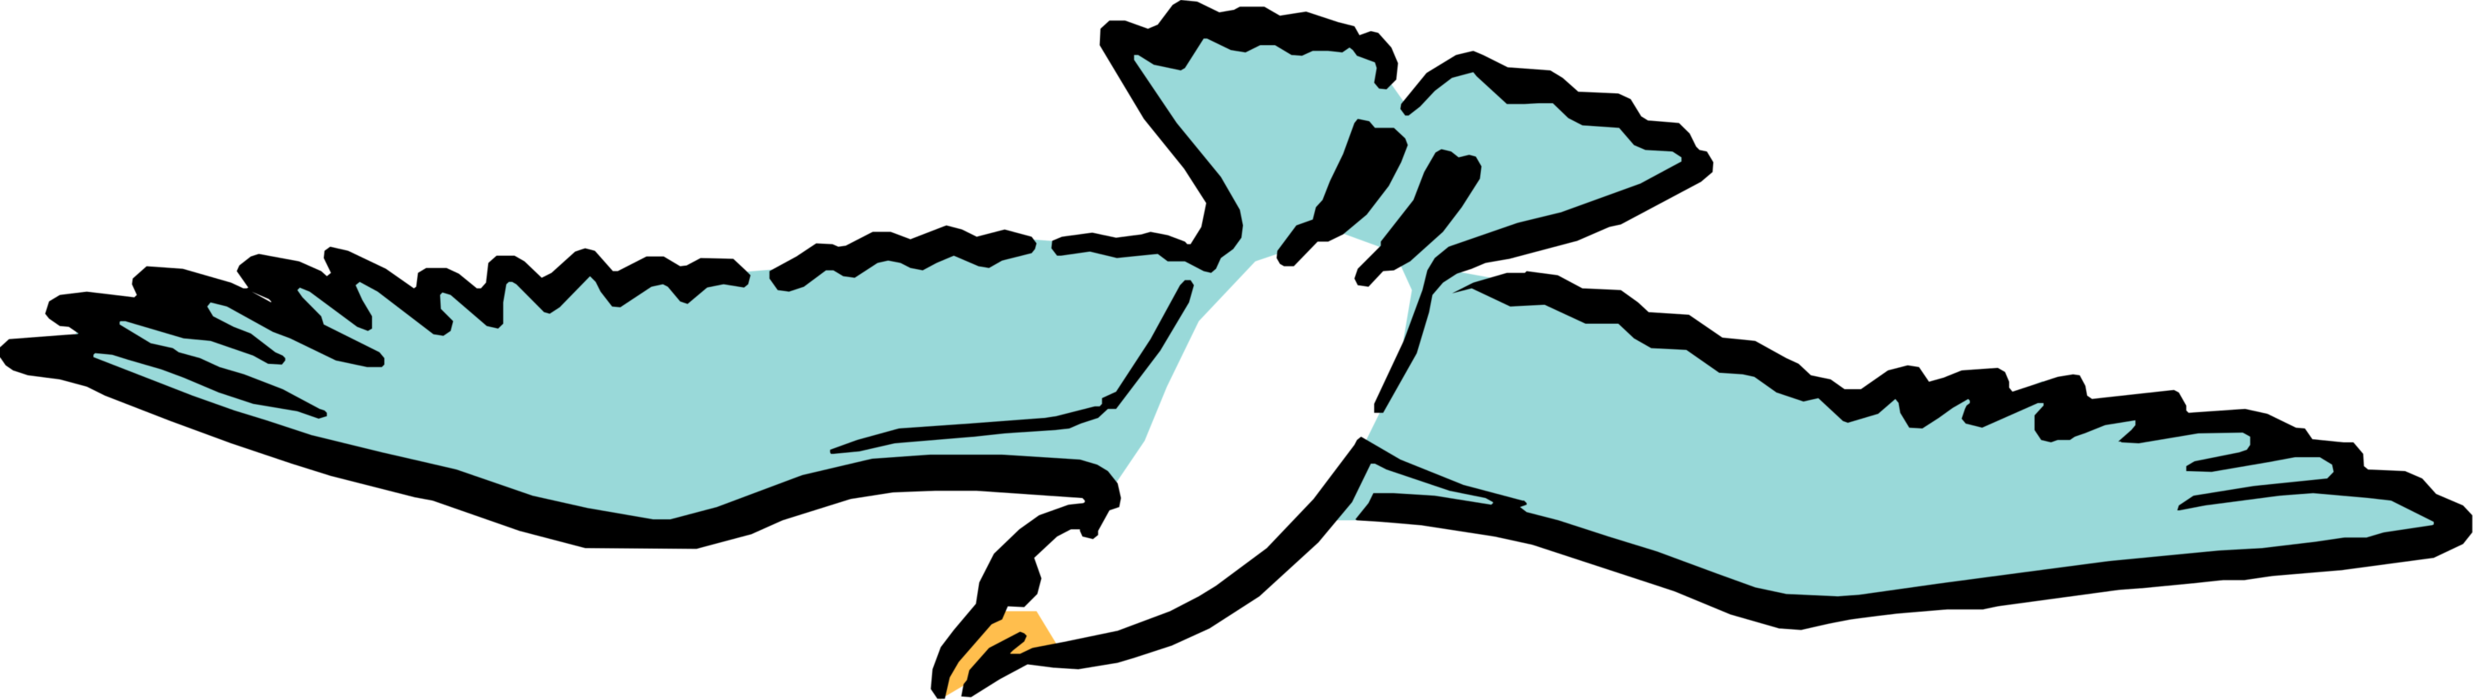 Vector Illustration of Cartoon Seabird Gull in Flight